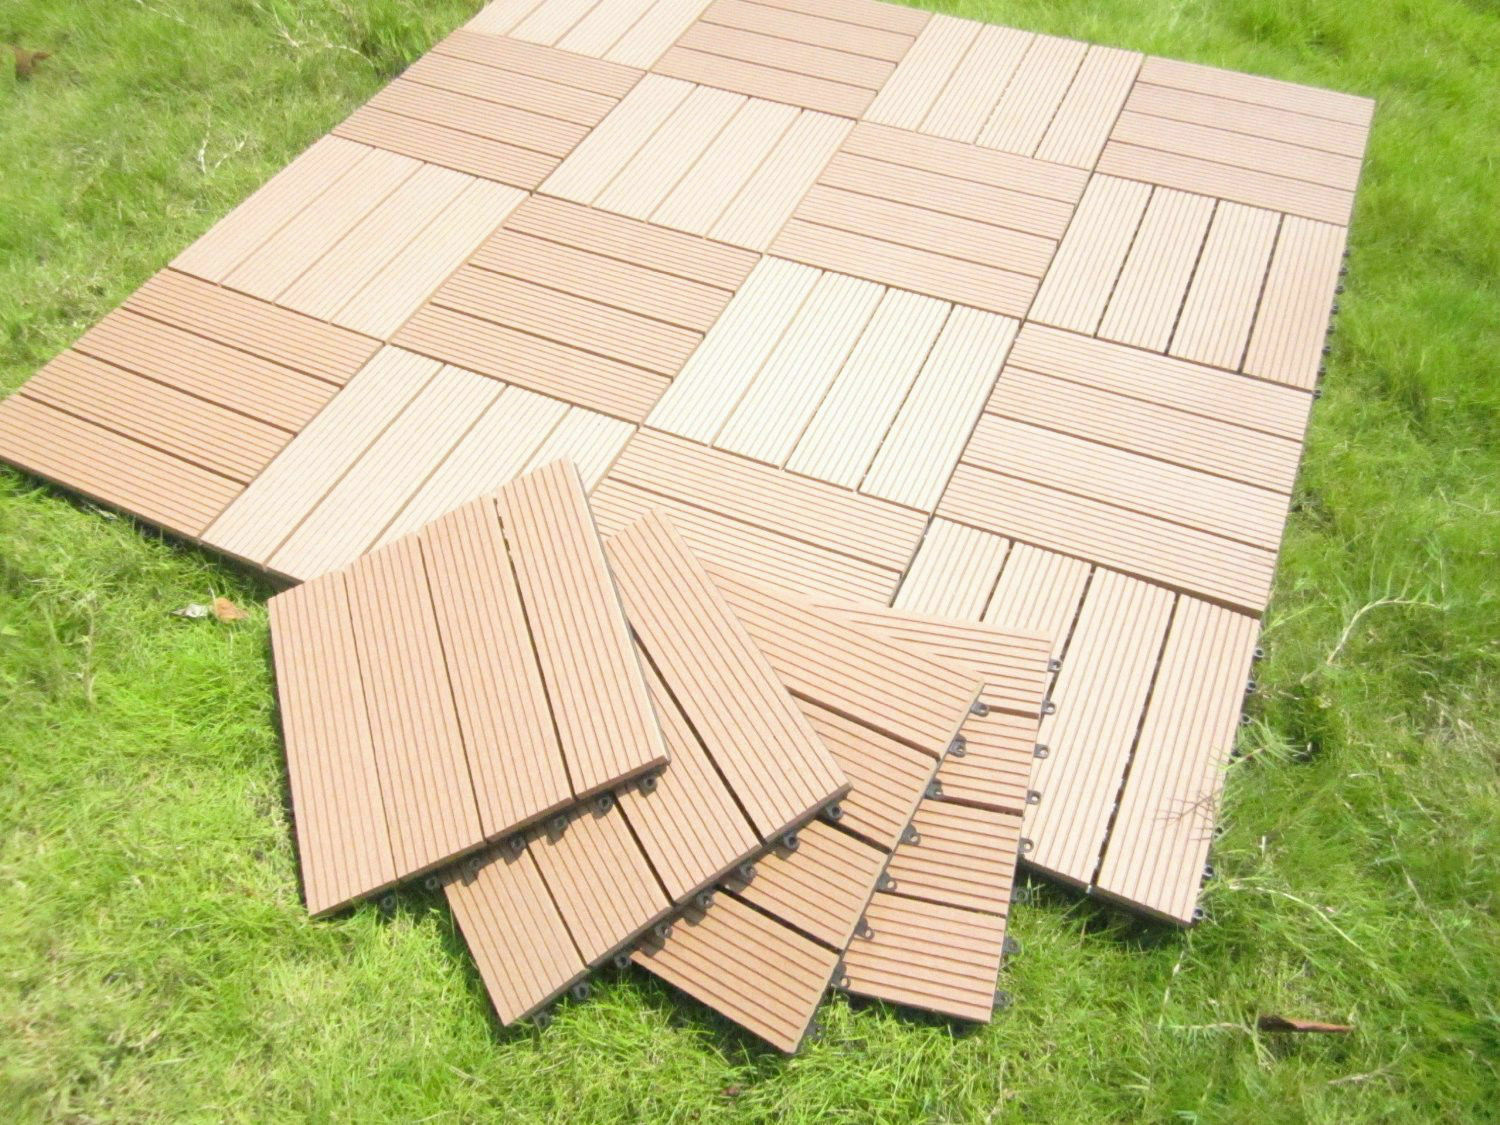 Wood Deck And Patio Interlocking Tiles ~ How to install interlocking deck tiles ebay